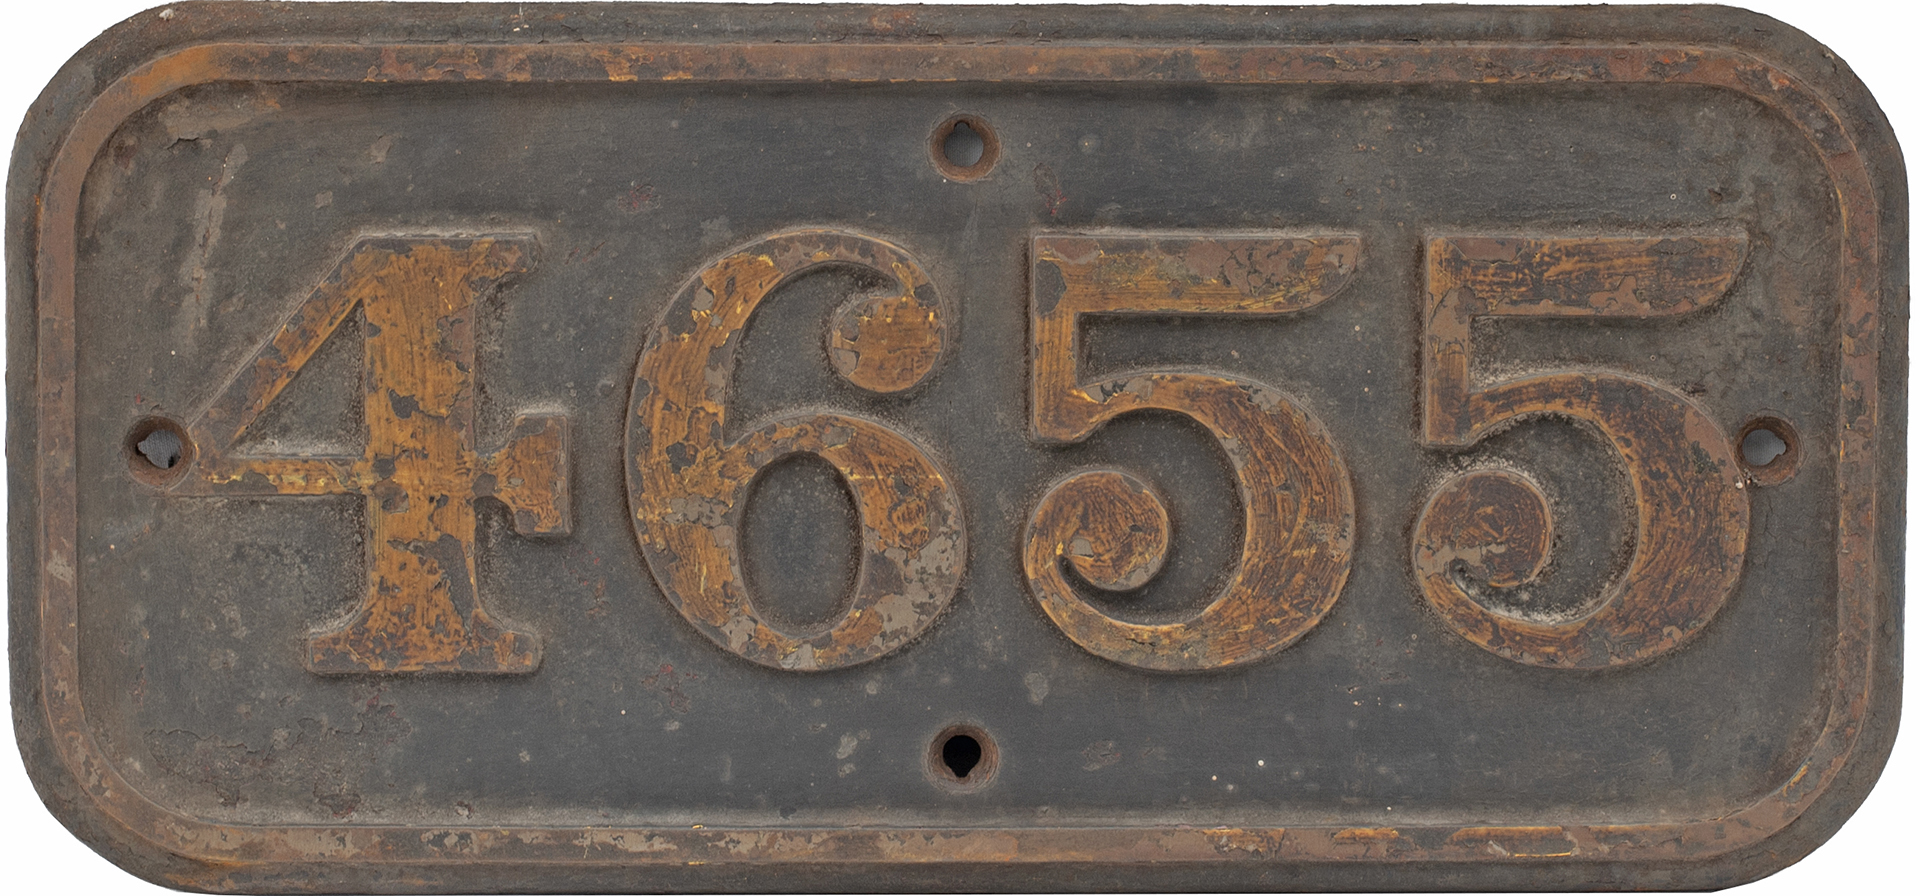 GWR cast iron cabside numberplate 4655 ex Collett 0-6-0 PT built at Swindon in 1943. Allocated to